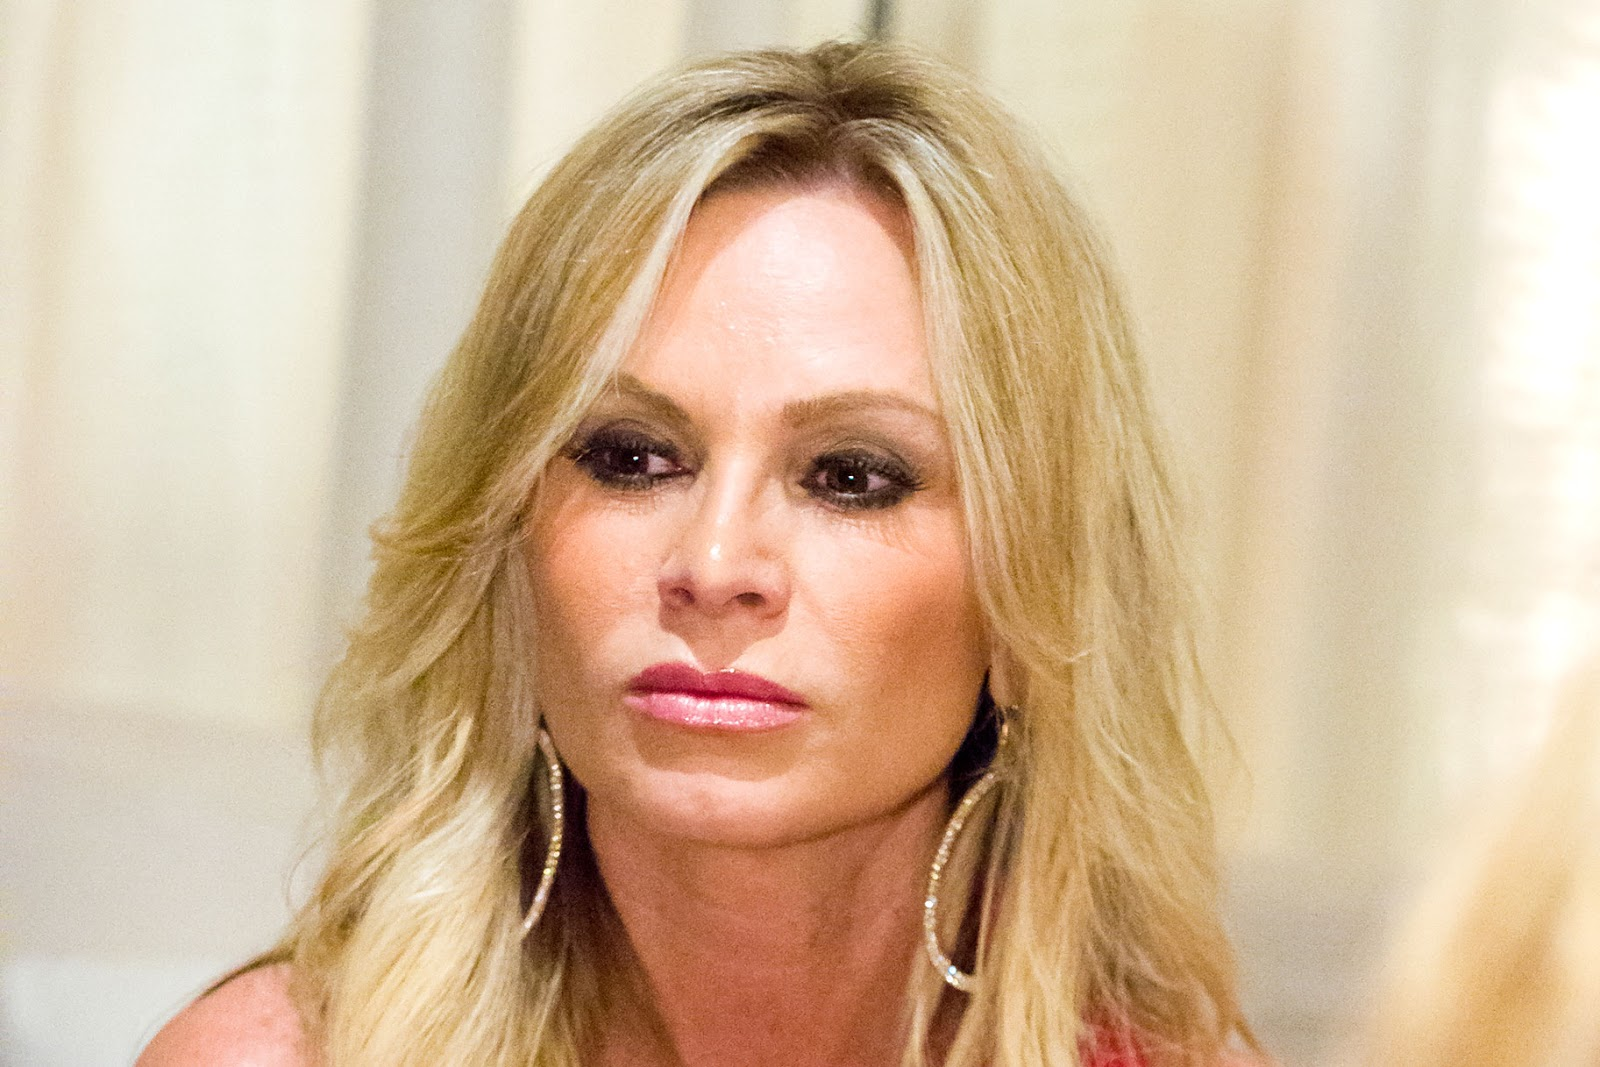 The Real Housewives of Orange County star Tamra Judge